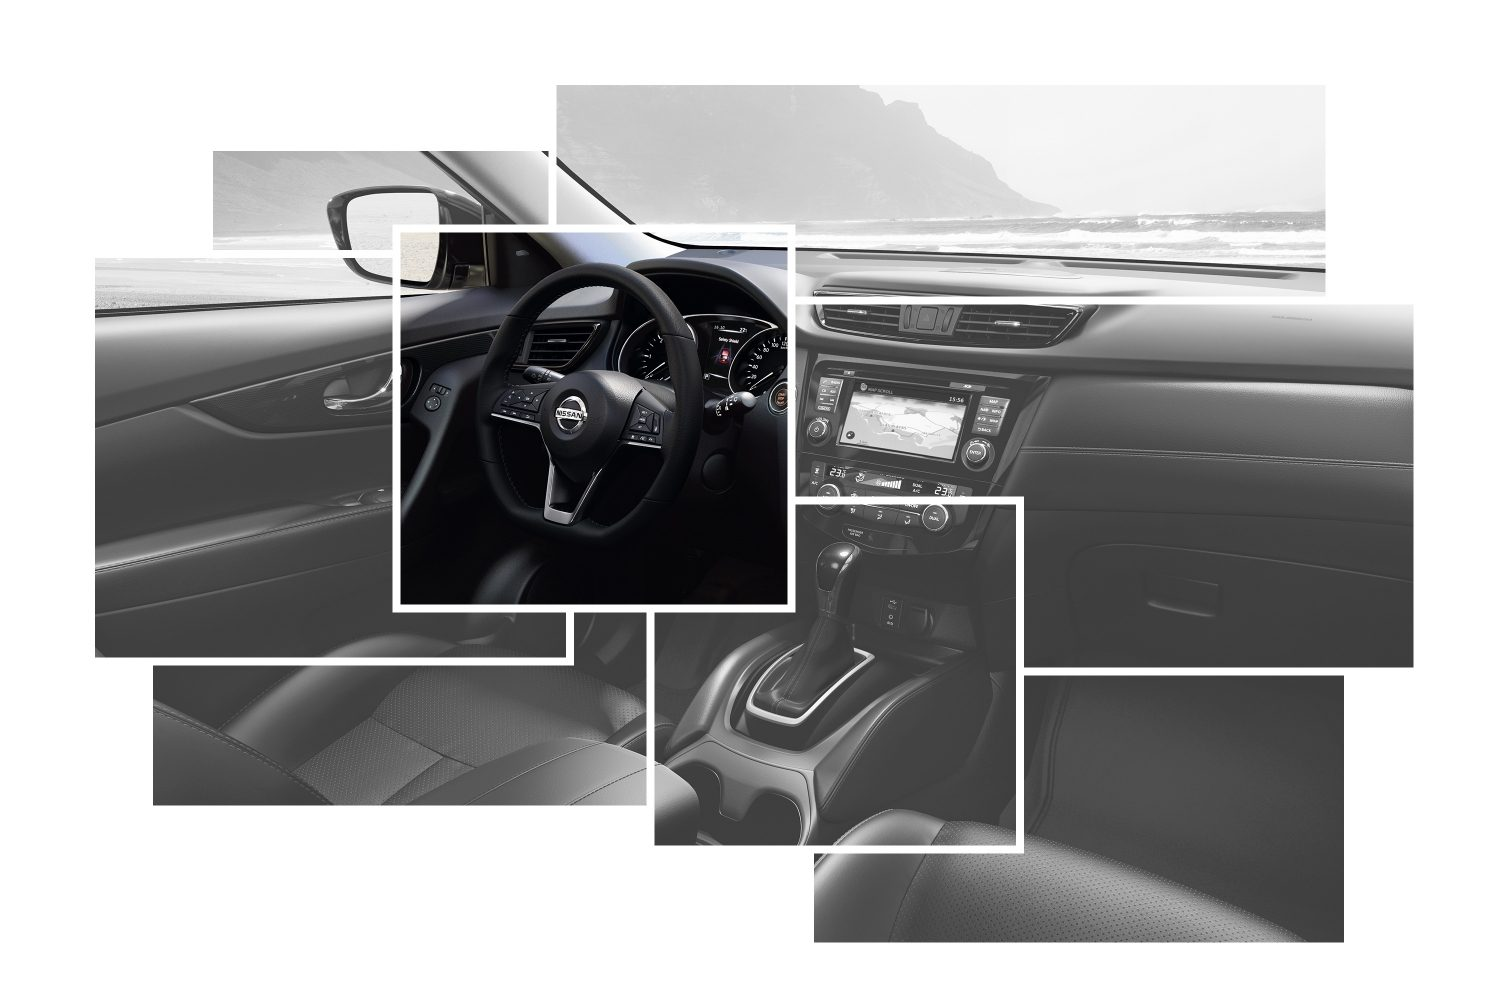 X-Trail Interior Design collage focus on heated steering wheel